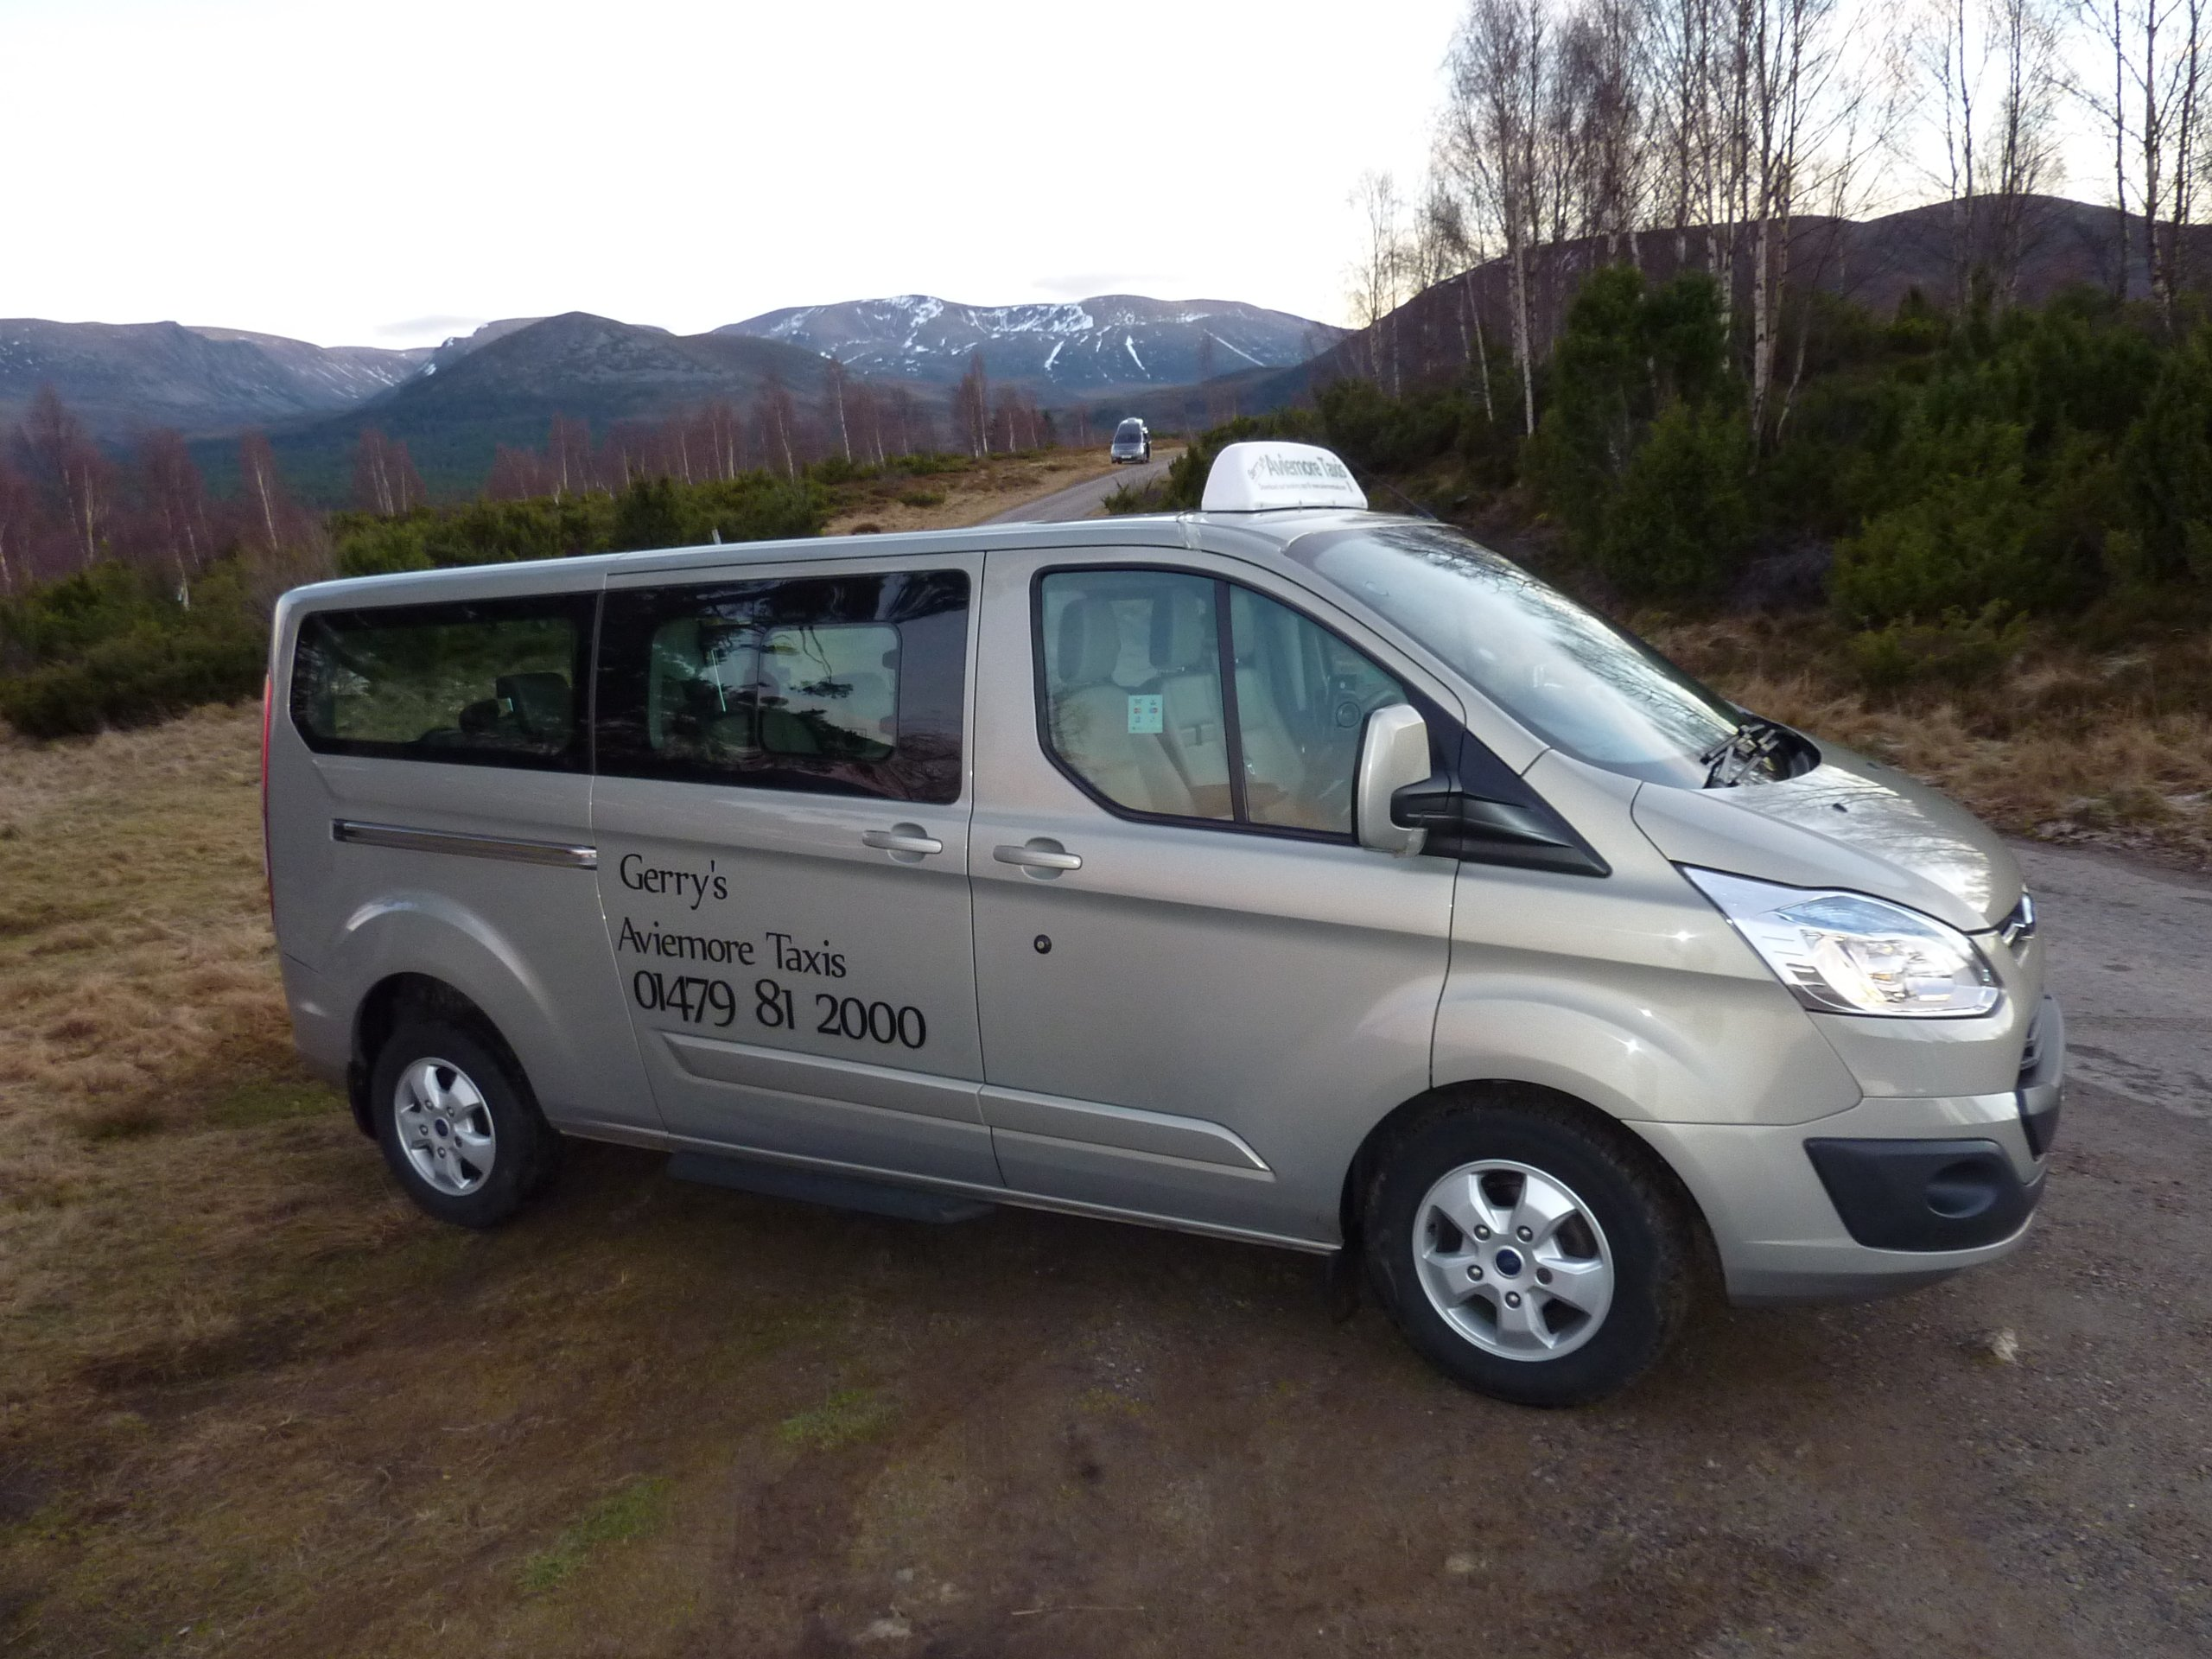 gerry s aviemore taxis taxi service in spey valley